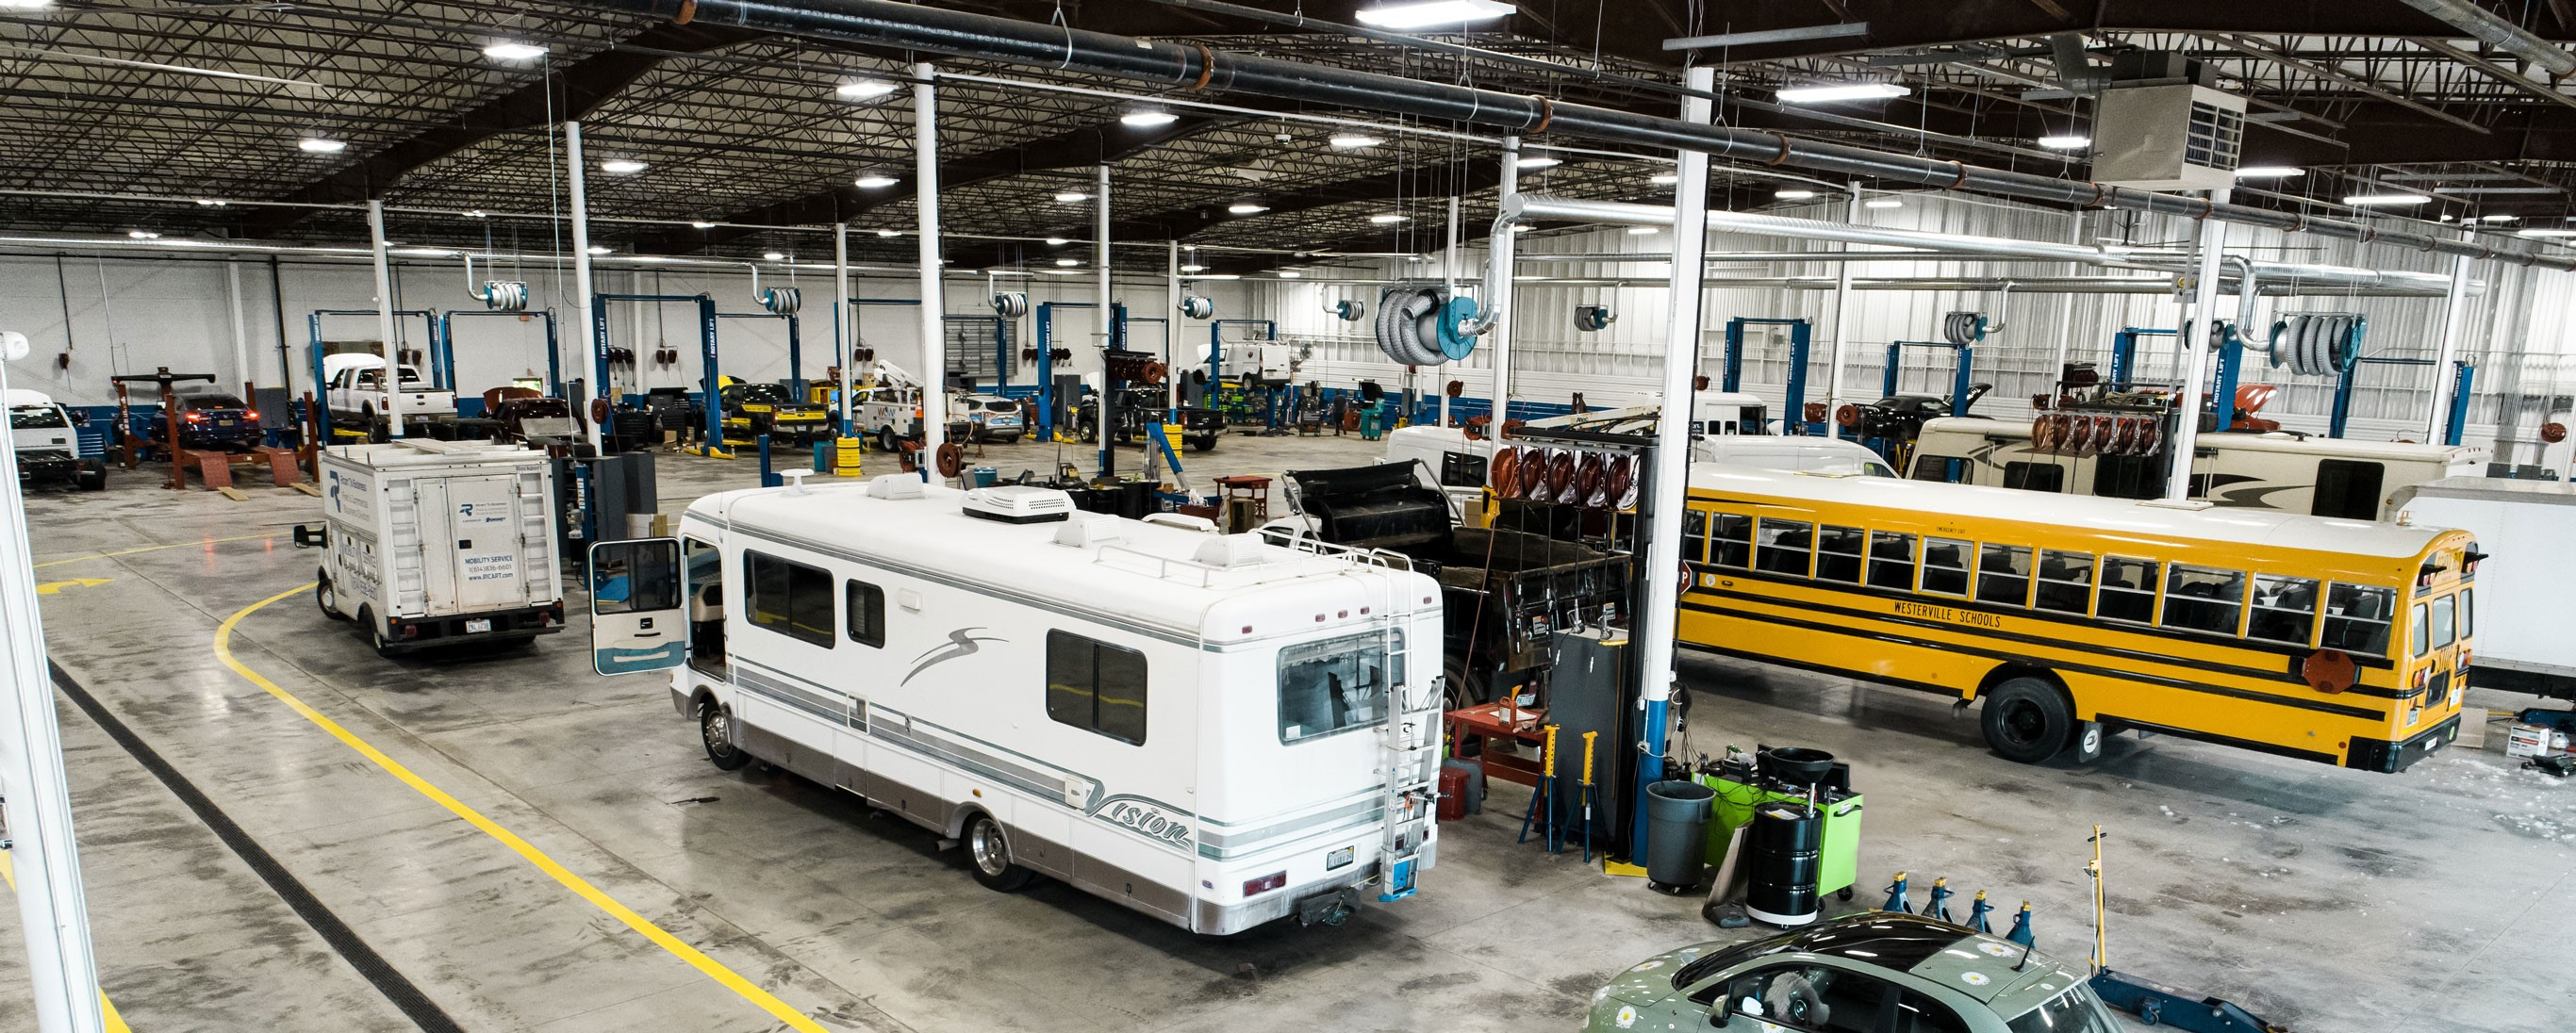 Ford Service Department Interior at Ricart Ford in Groveport, OH